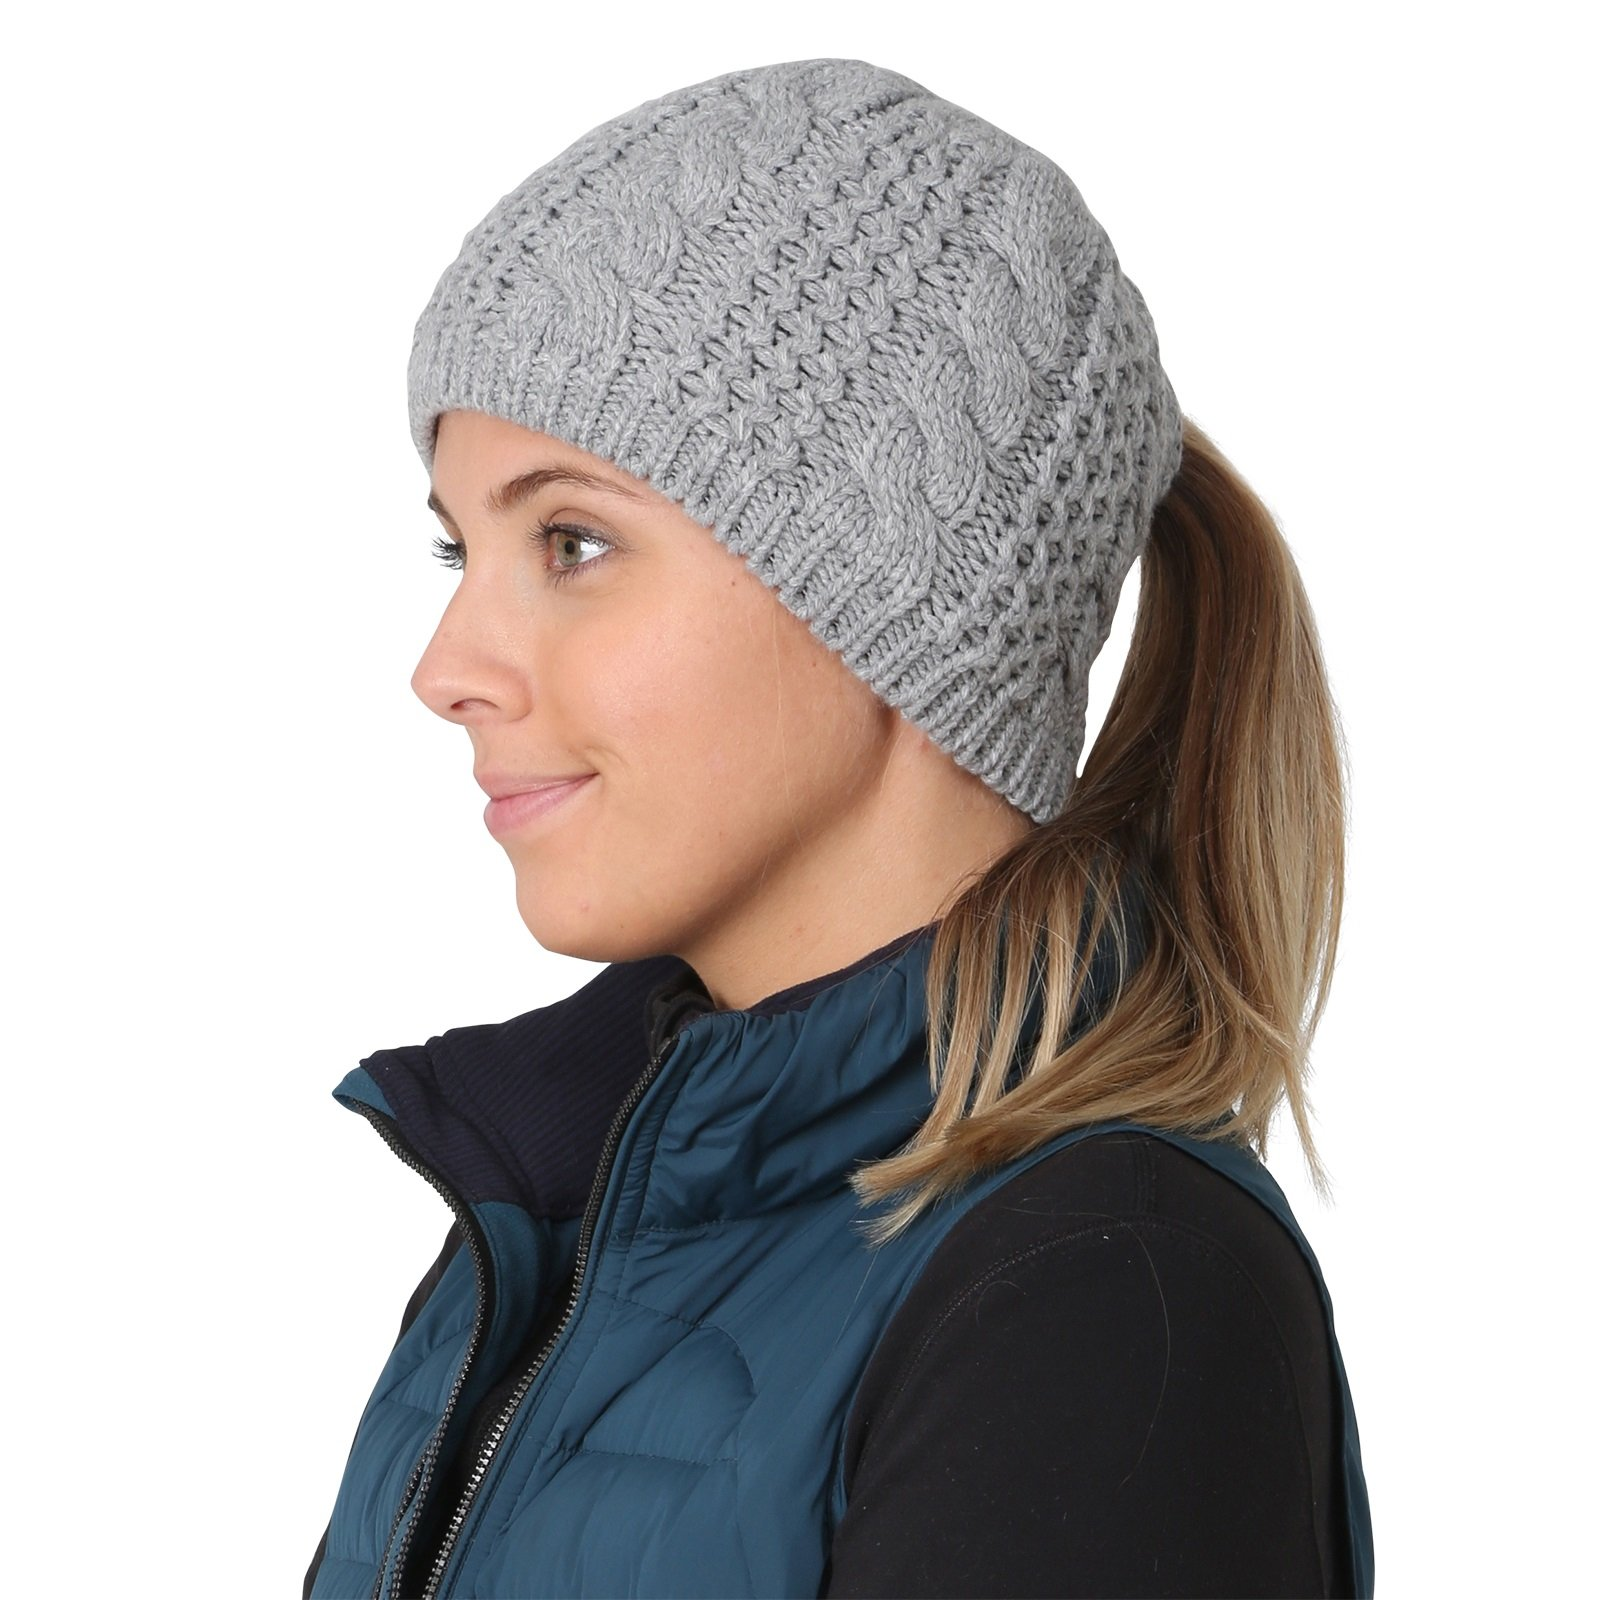 TrailHeads Women's Cable Knit Ponytail Beanie - storm grey by TrailHeads (Image #3)